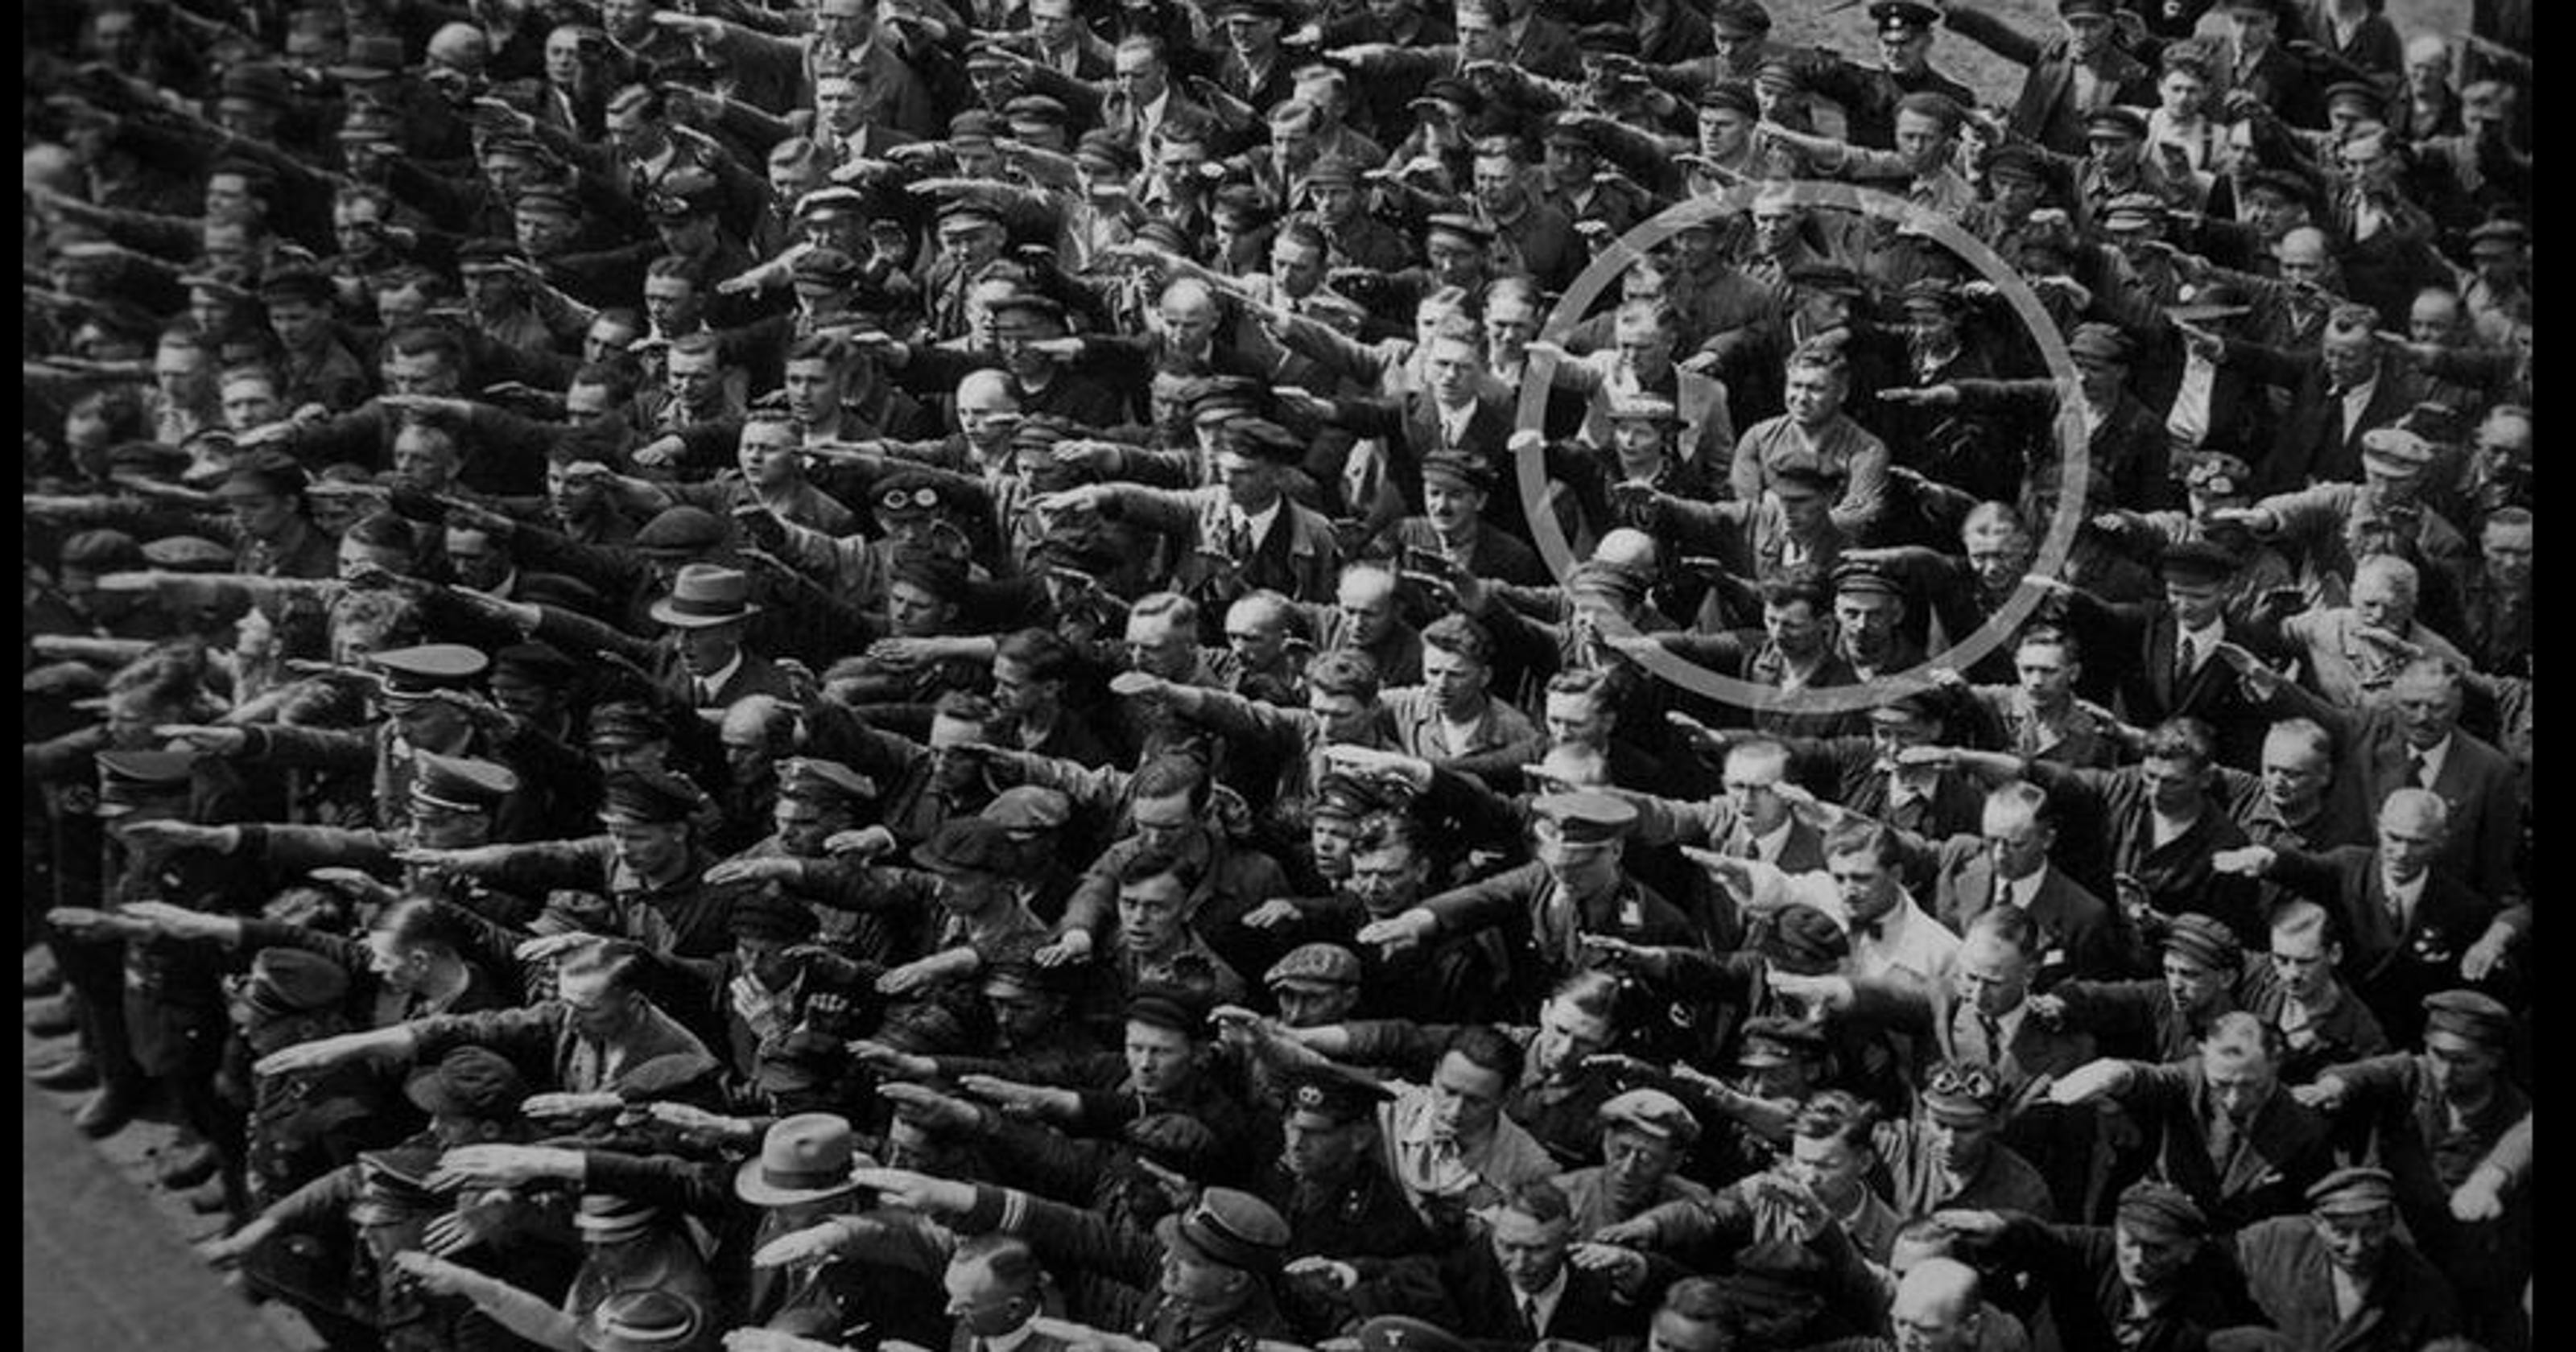 Tragic Tale Of The German Who Wouldnt Salute Hitler